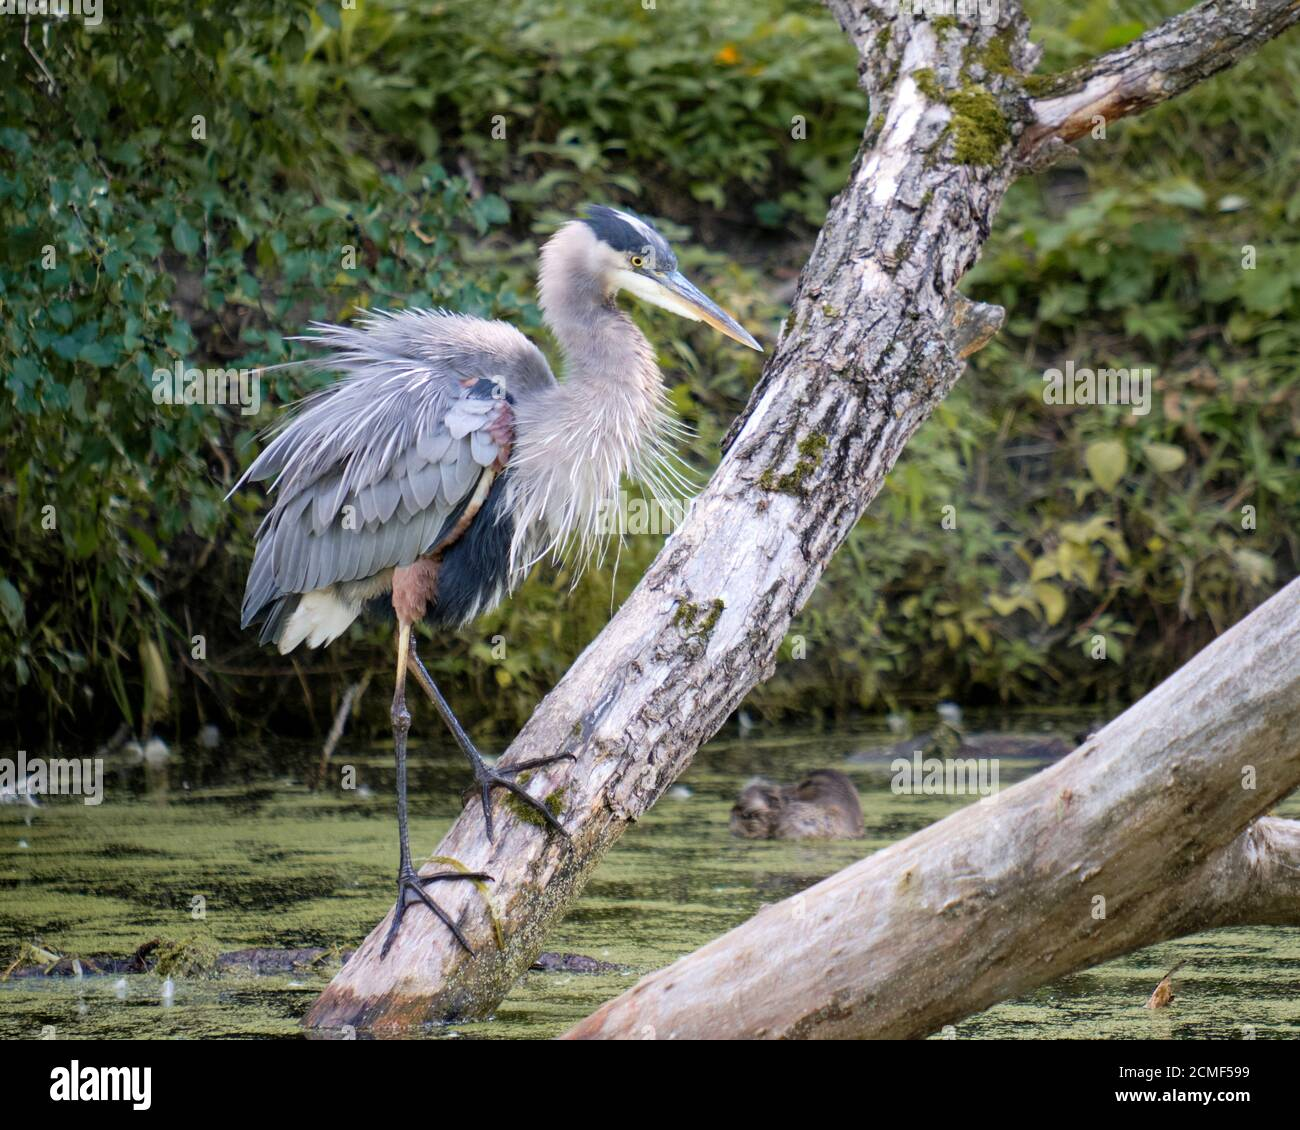 a-great-blue-heron-ardea-herodias-standing-on-large-trunk-in-pond-water-looking-dishevelled-2CMF599.jpg